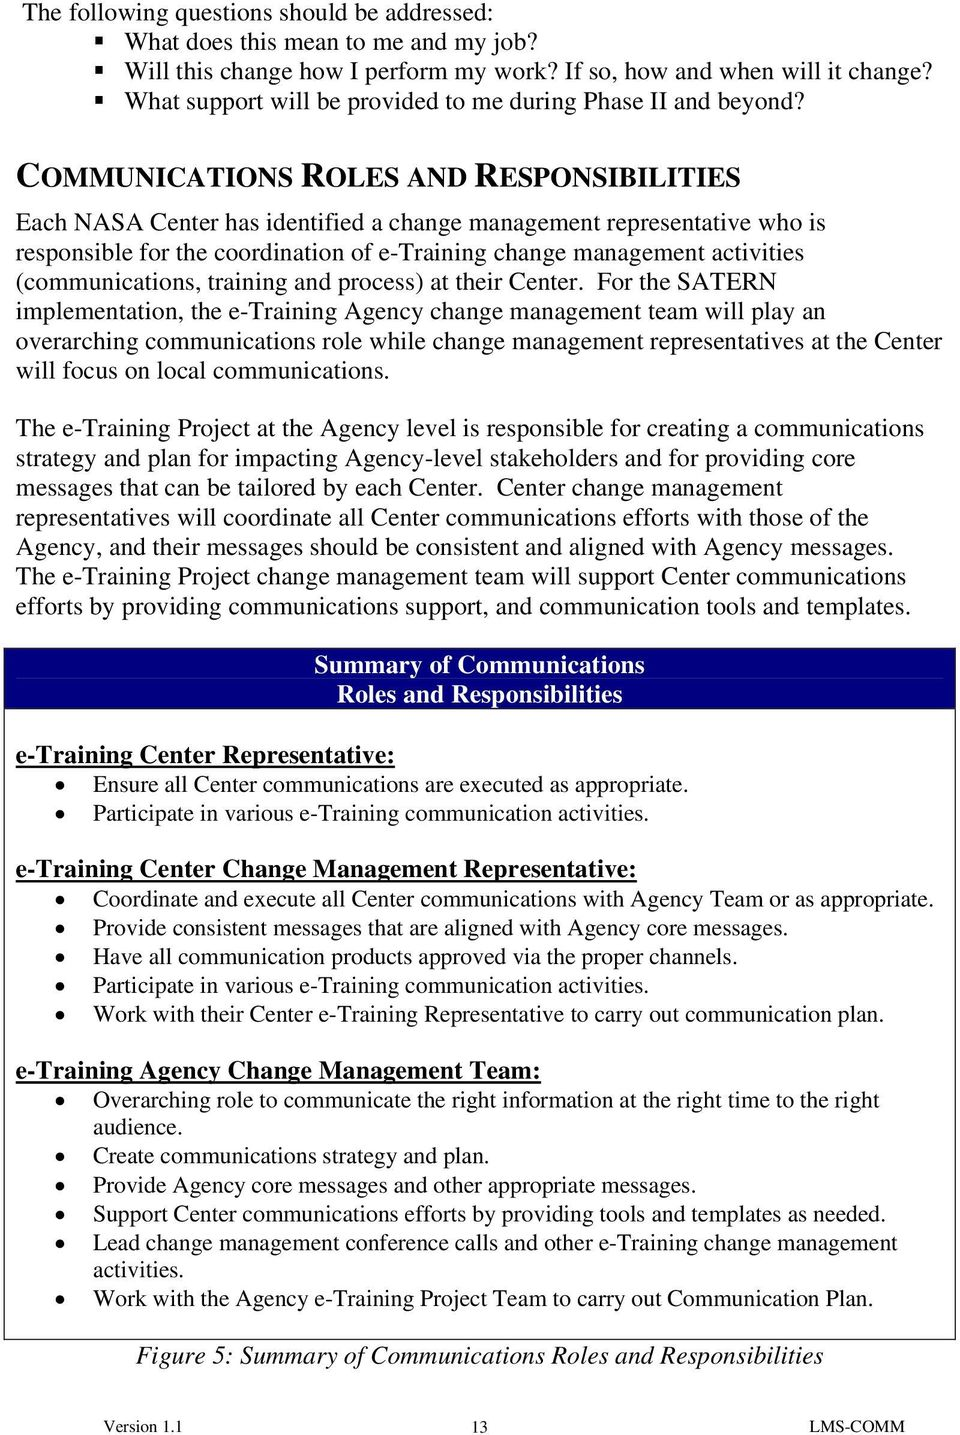 COMMUNICATIONS ROLES AND RESPONSIBILITIES Each NASA Center has identified a change management representative who is responsible for the coordination of e-training change management activities